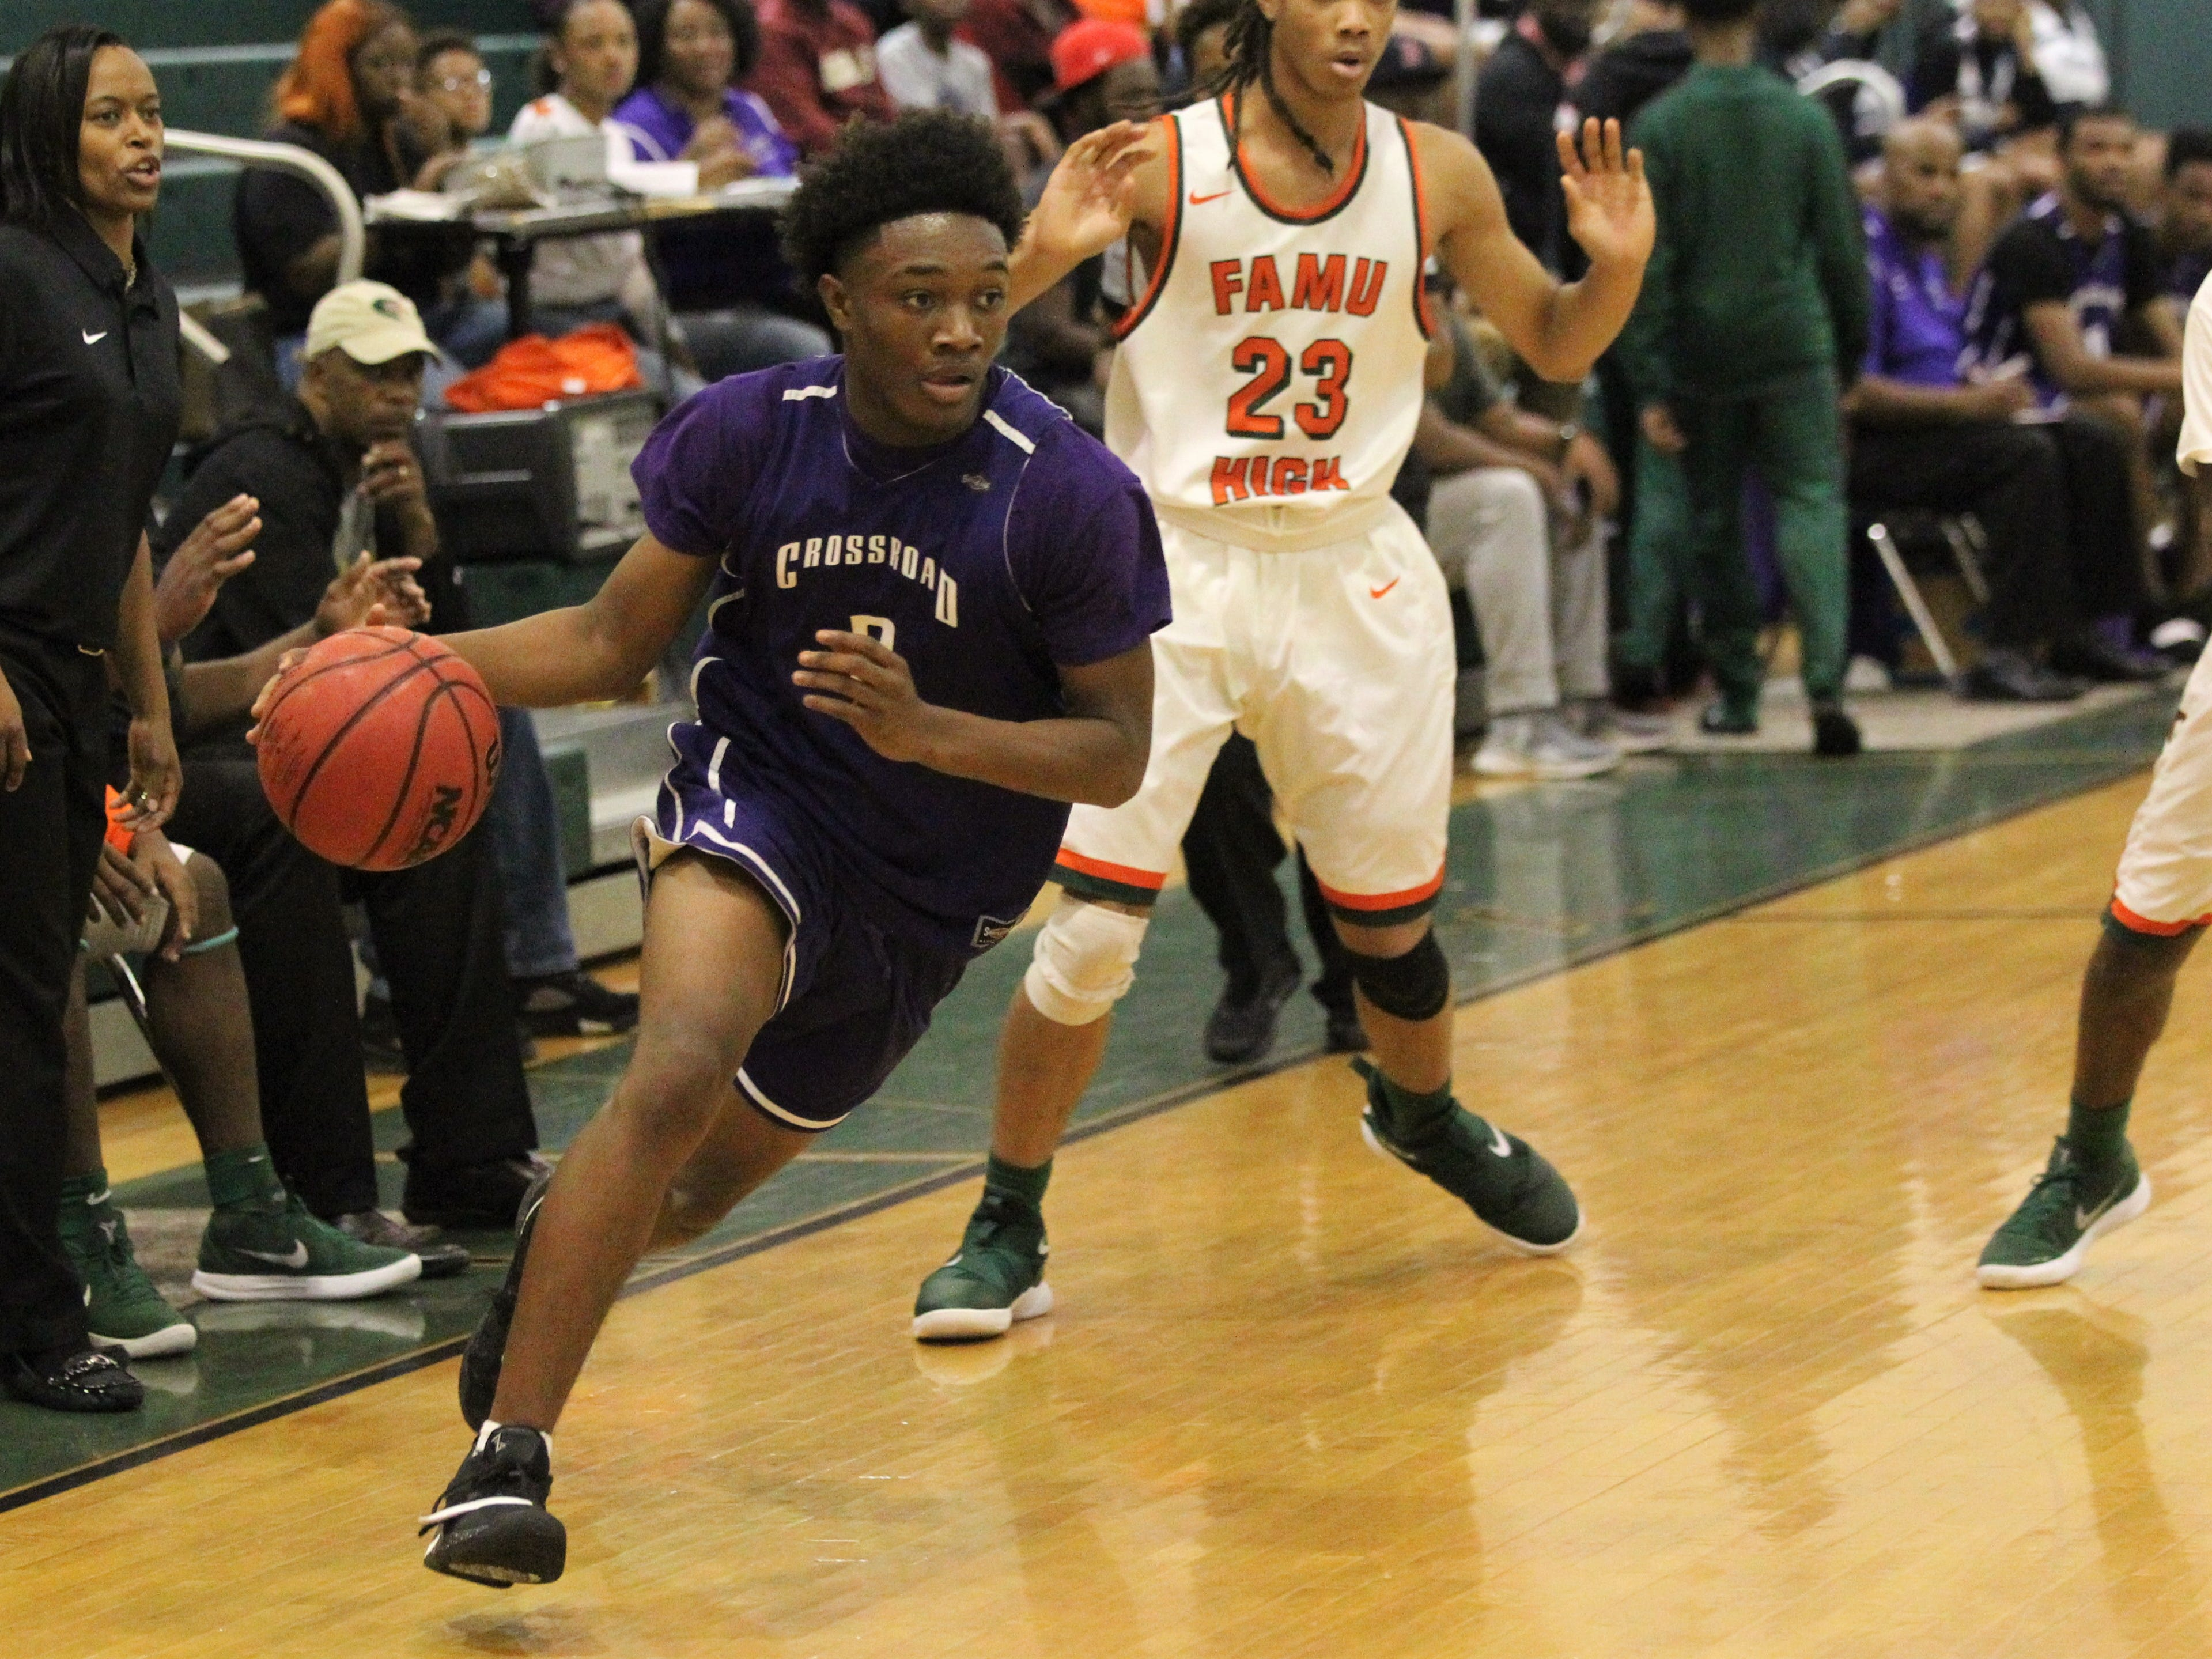 Jeremiah Outley drives as Crossroad Academy's boys basketball team plays at FAMU DRS on Jan. 7, 2019.